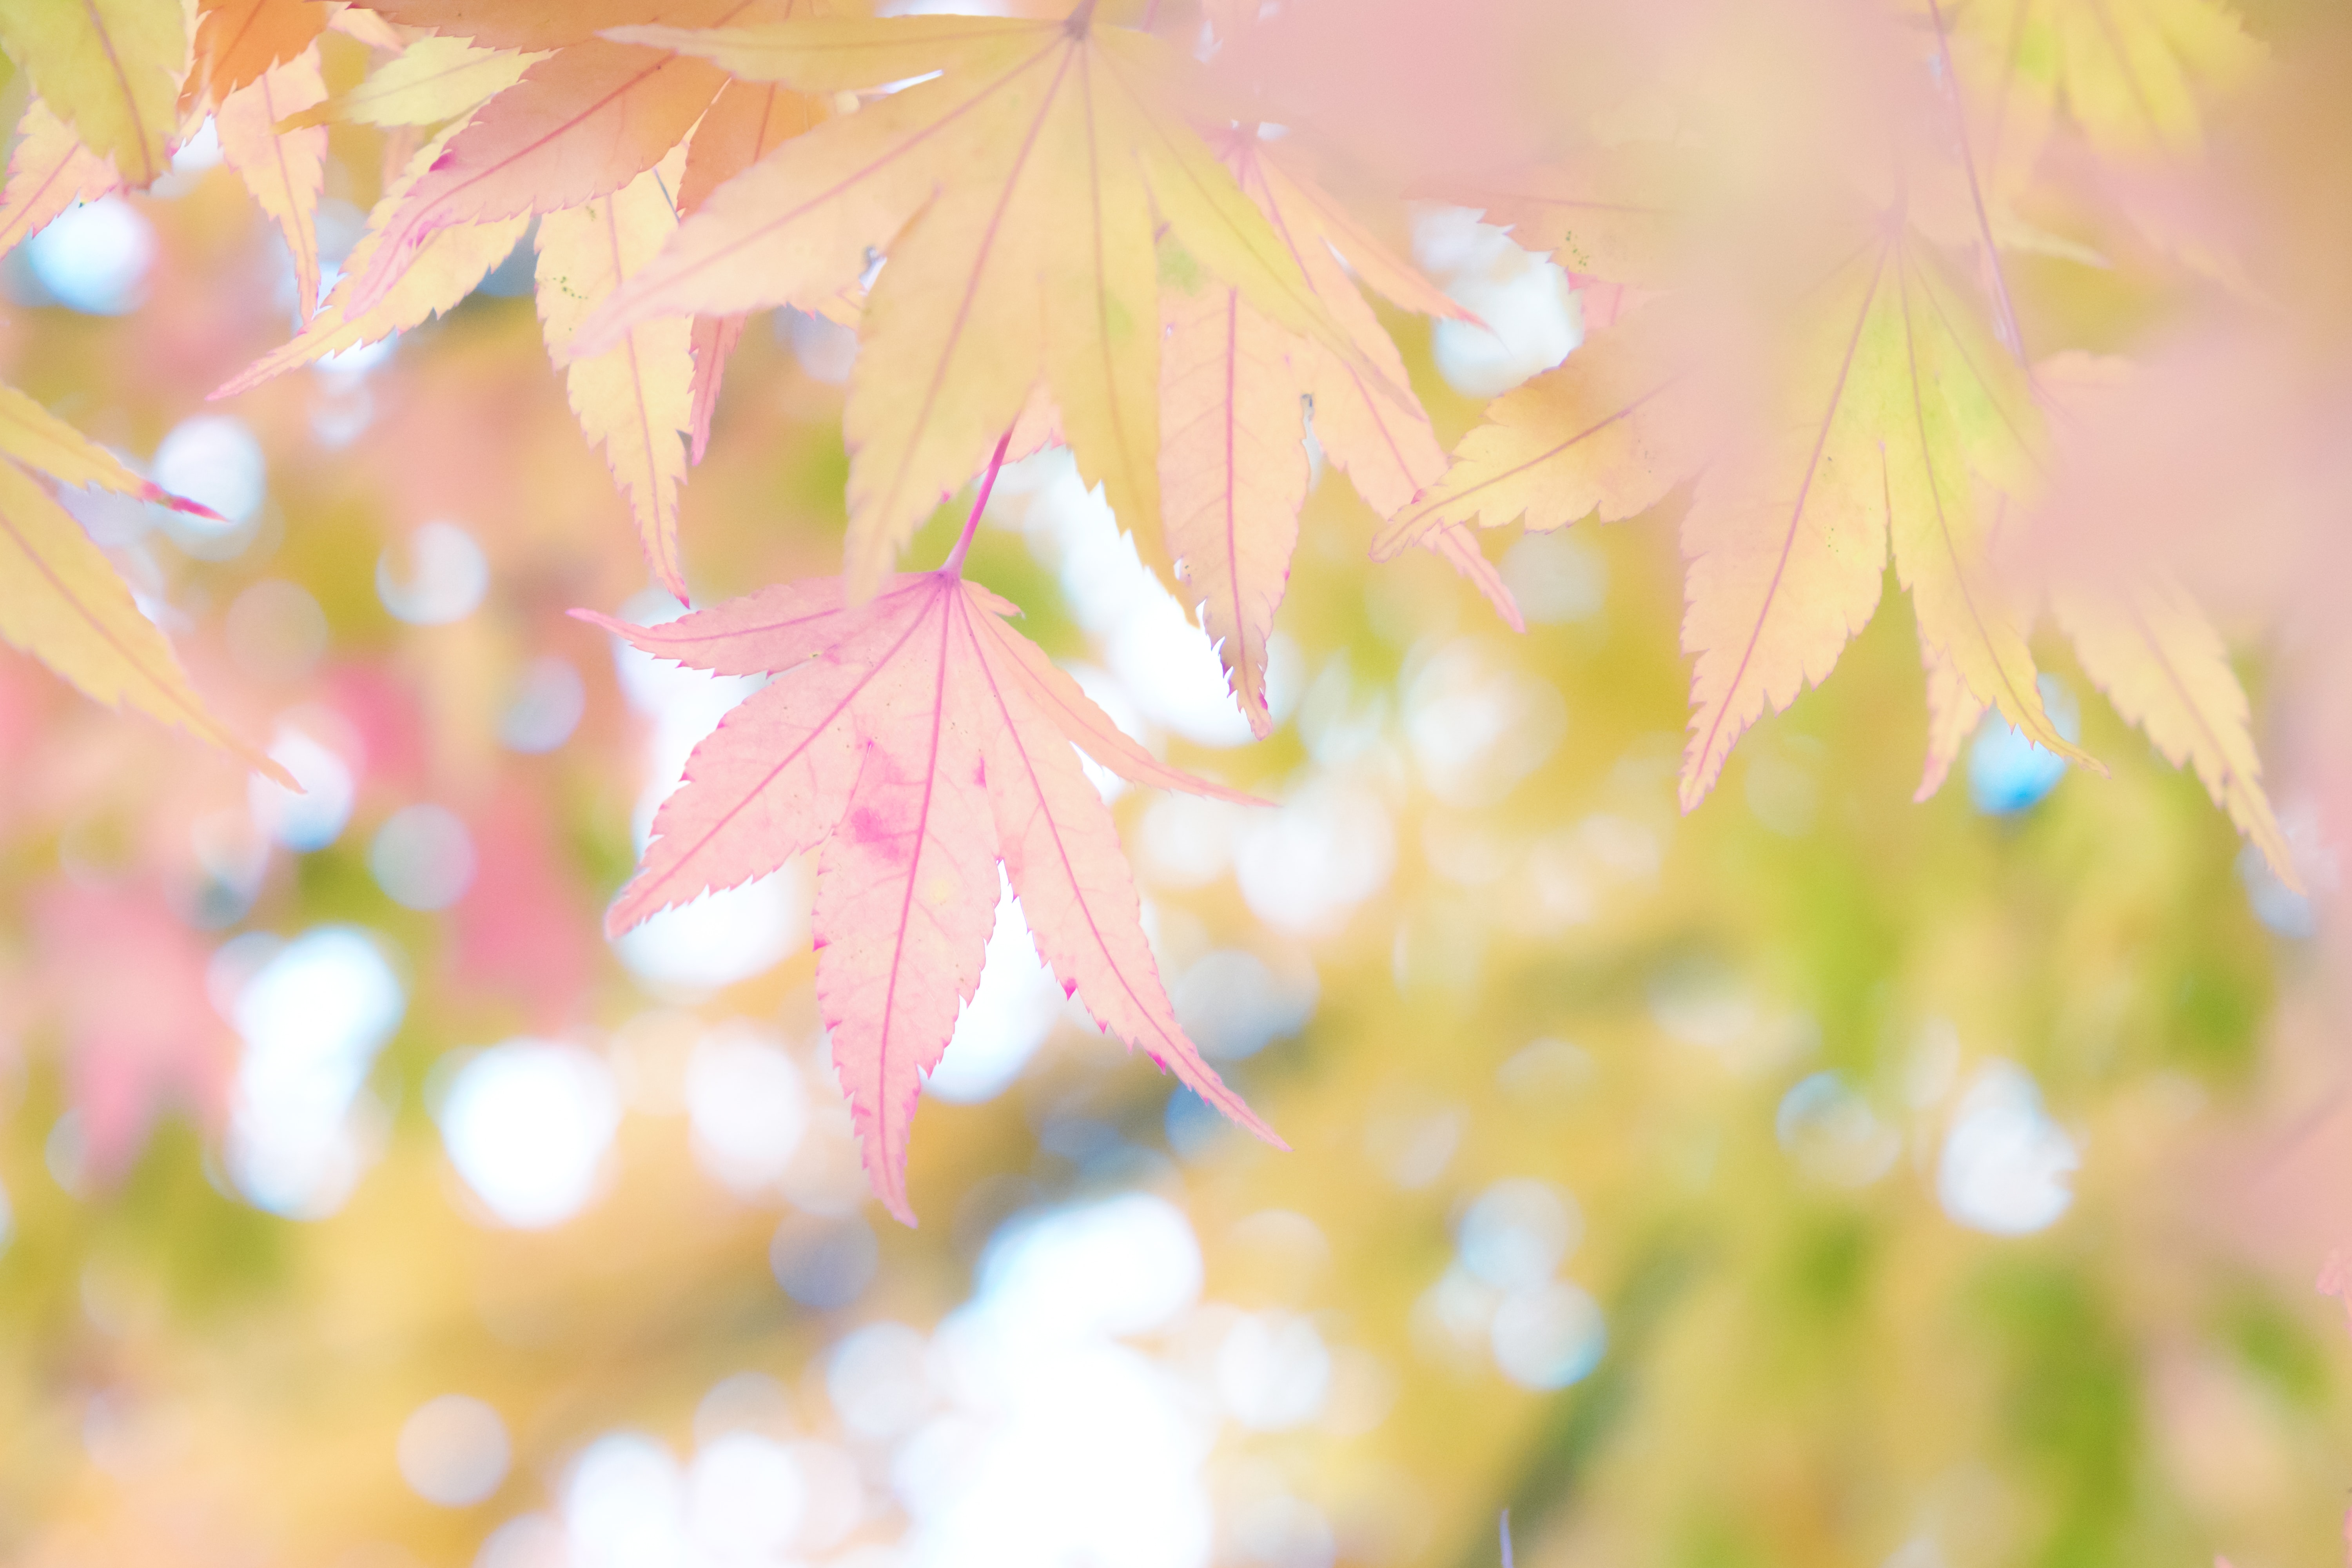 closeup photo of green and pink leaves